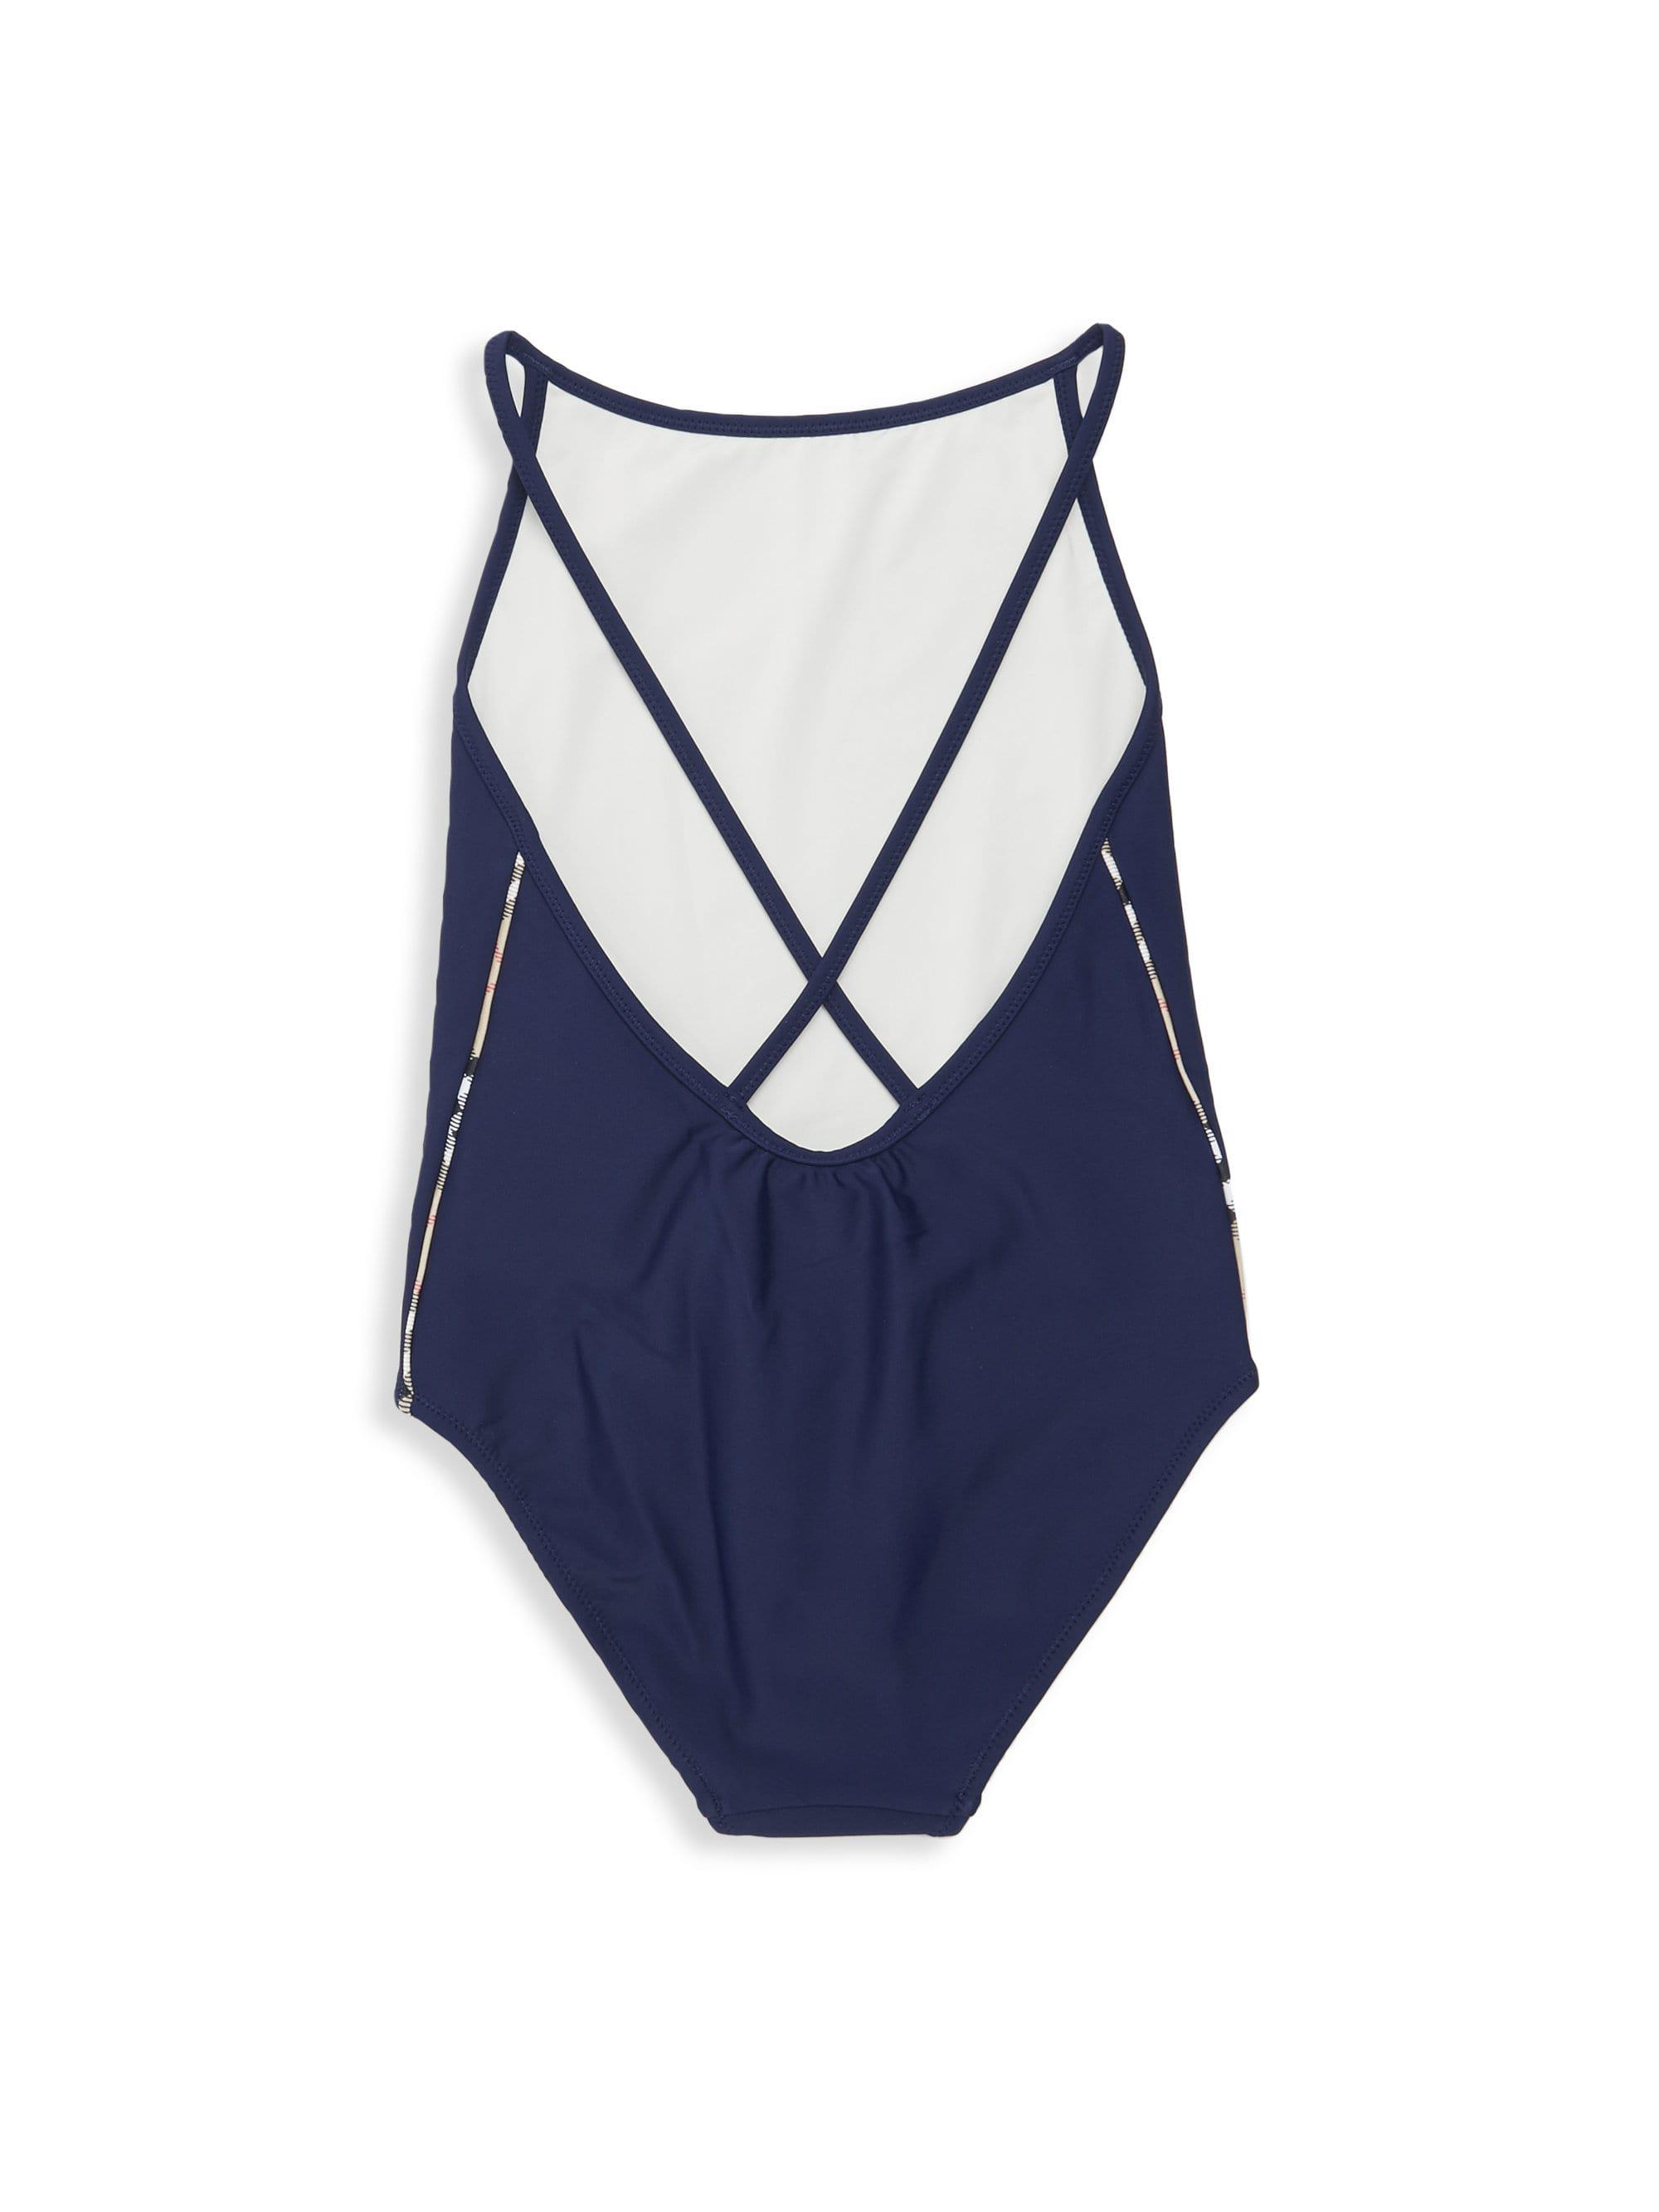 31f128e475 Burberry - Blue Little Girl's & Girl's One-piece Sandine Swimsuit - Lyst.  View fullscreen